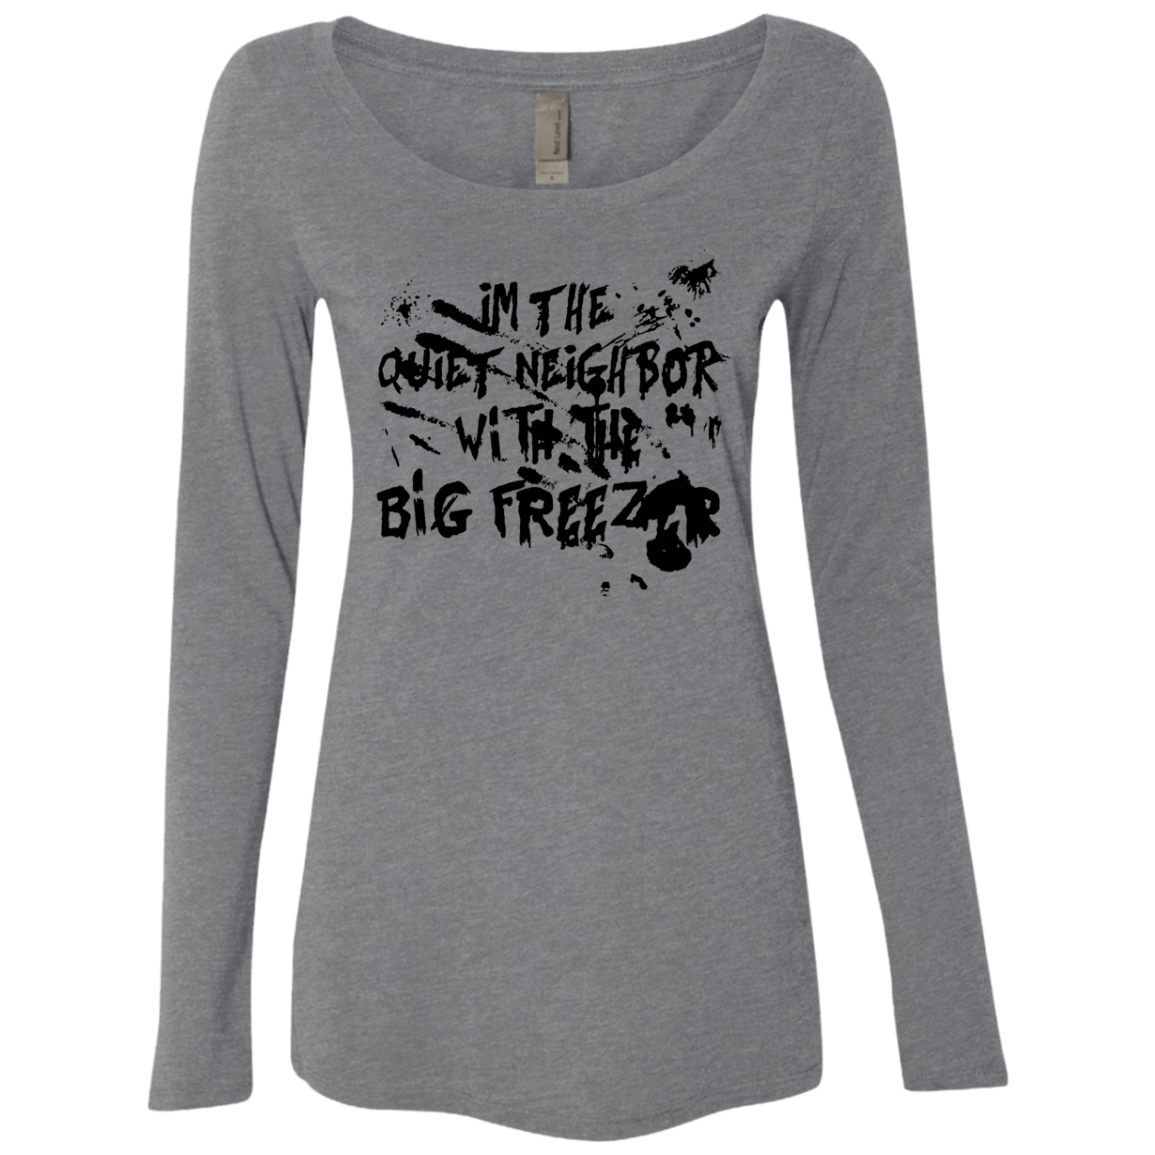 I'm The Quiet Neighbour With The Big Freezer Women's Long Sleeve Tee